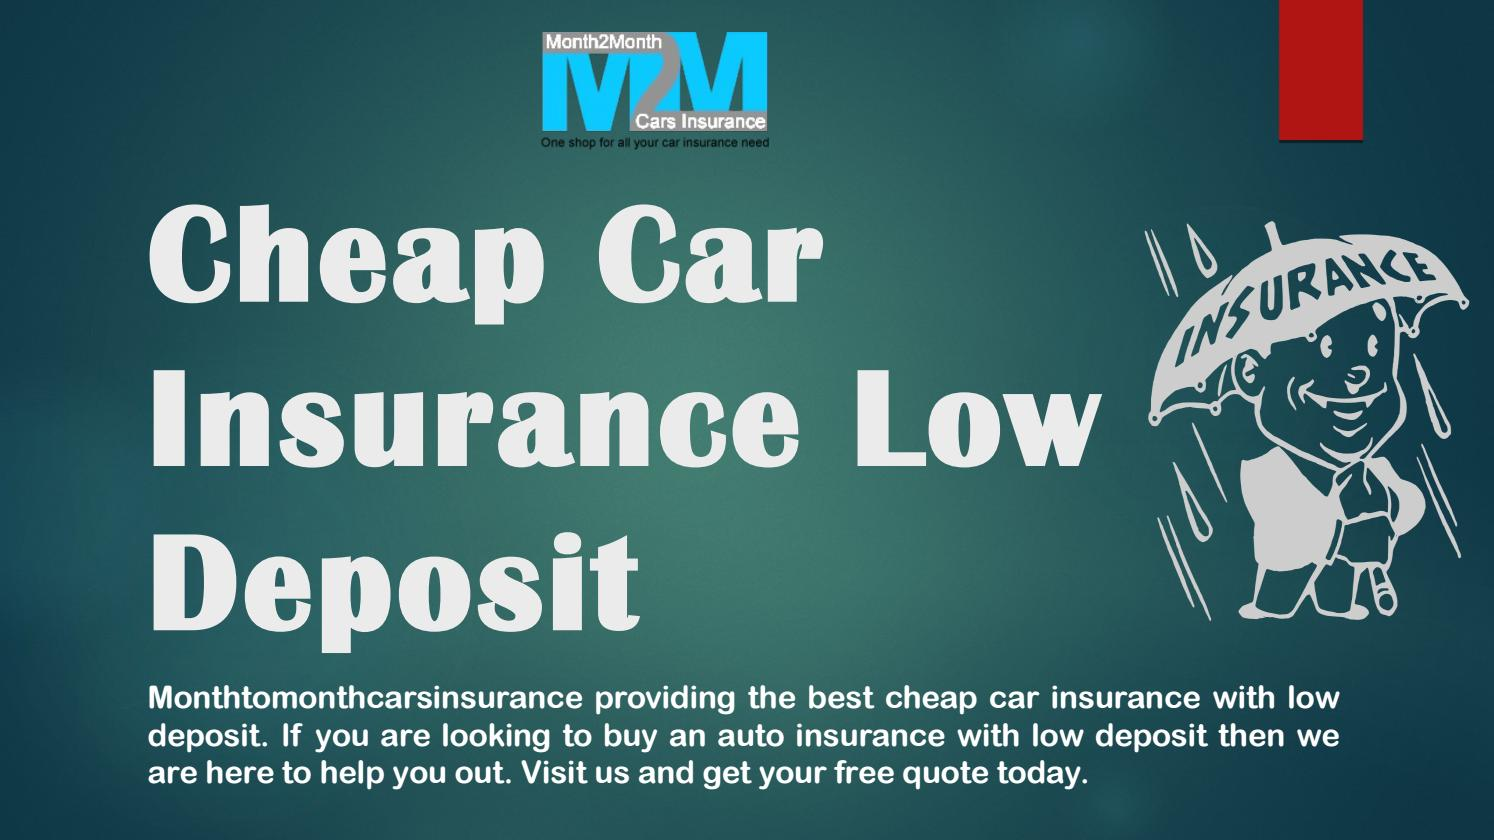 Get Cheap Low Deposit Car Insurance Online Quotes By Month2month007 Issuu